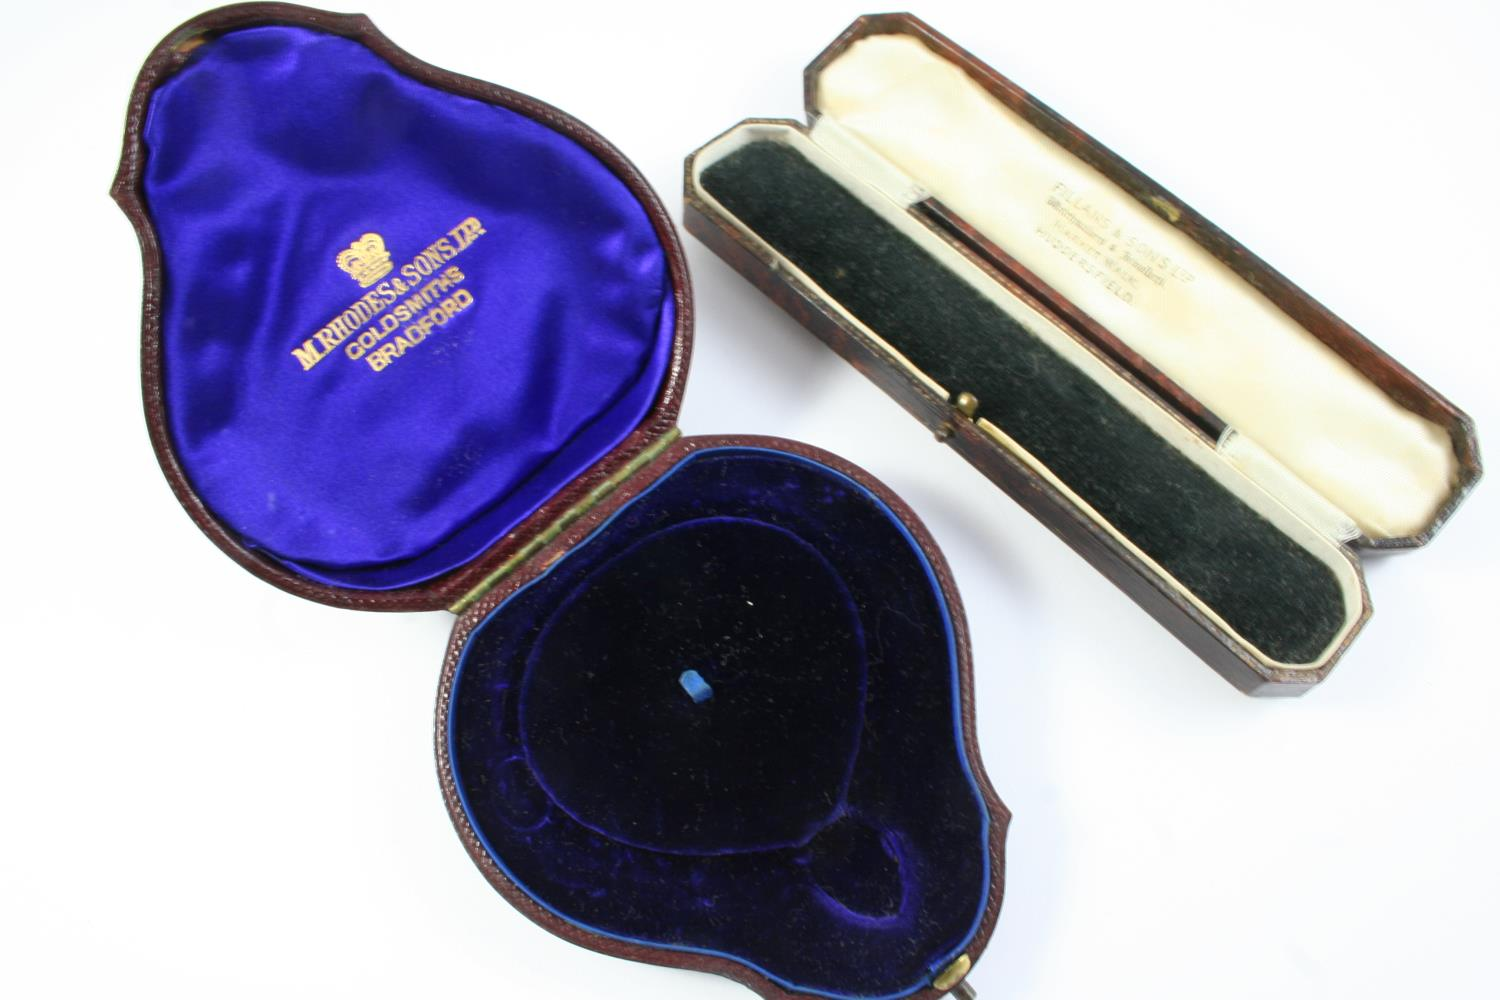 A QUANTITY OF ASSORTED JEWELLERY BOXES - Image 6 of 6